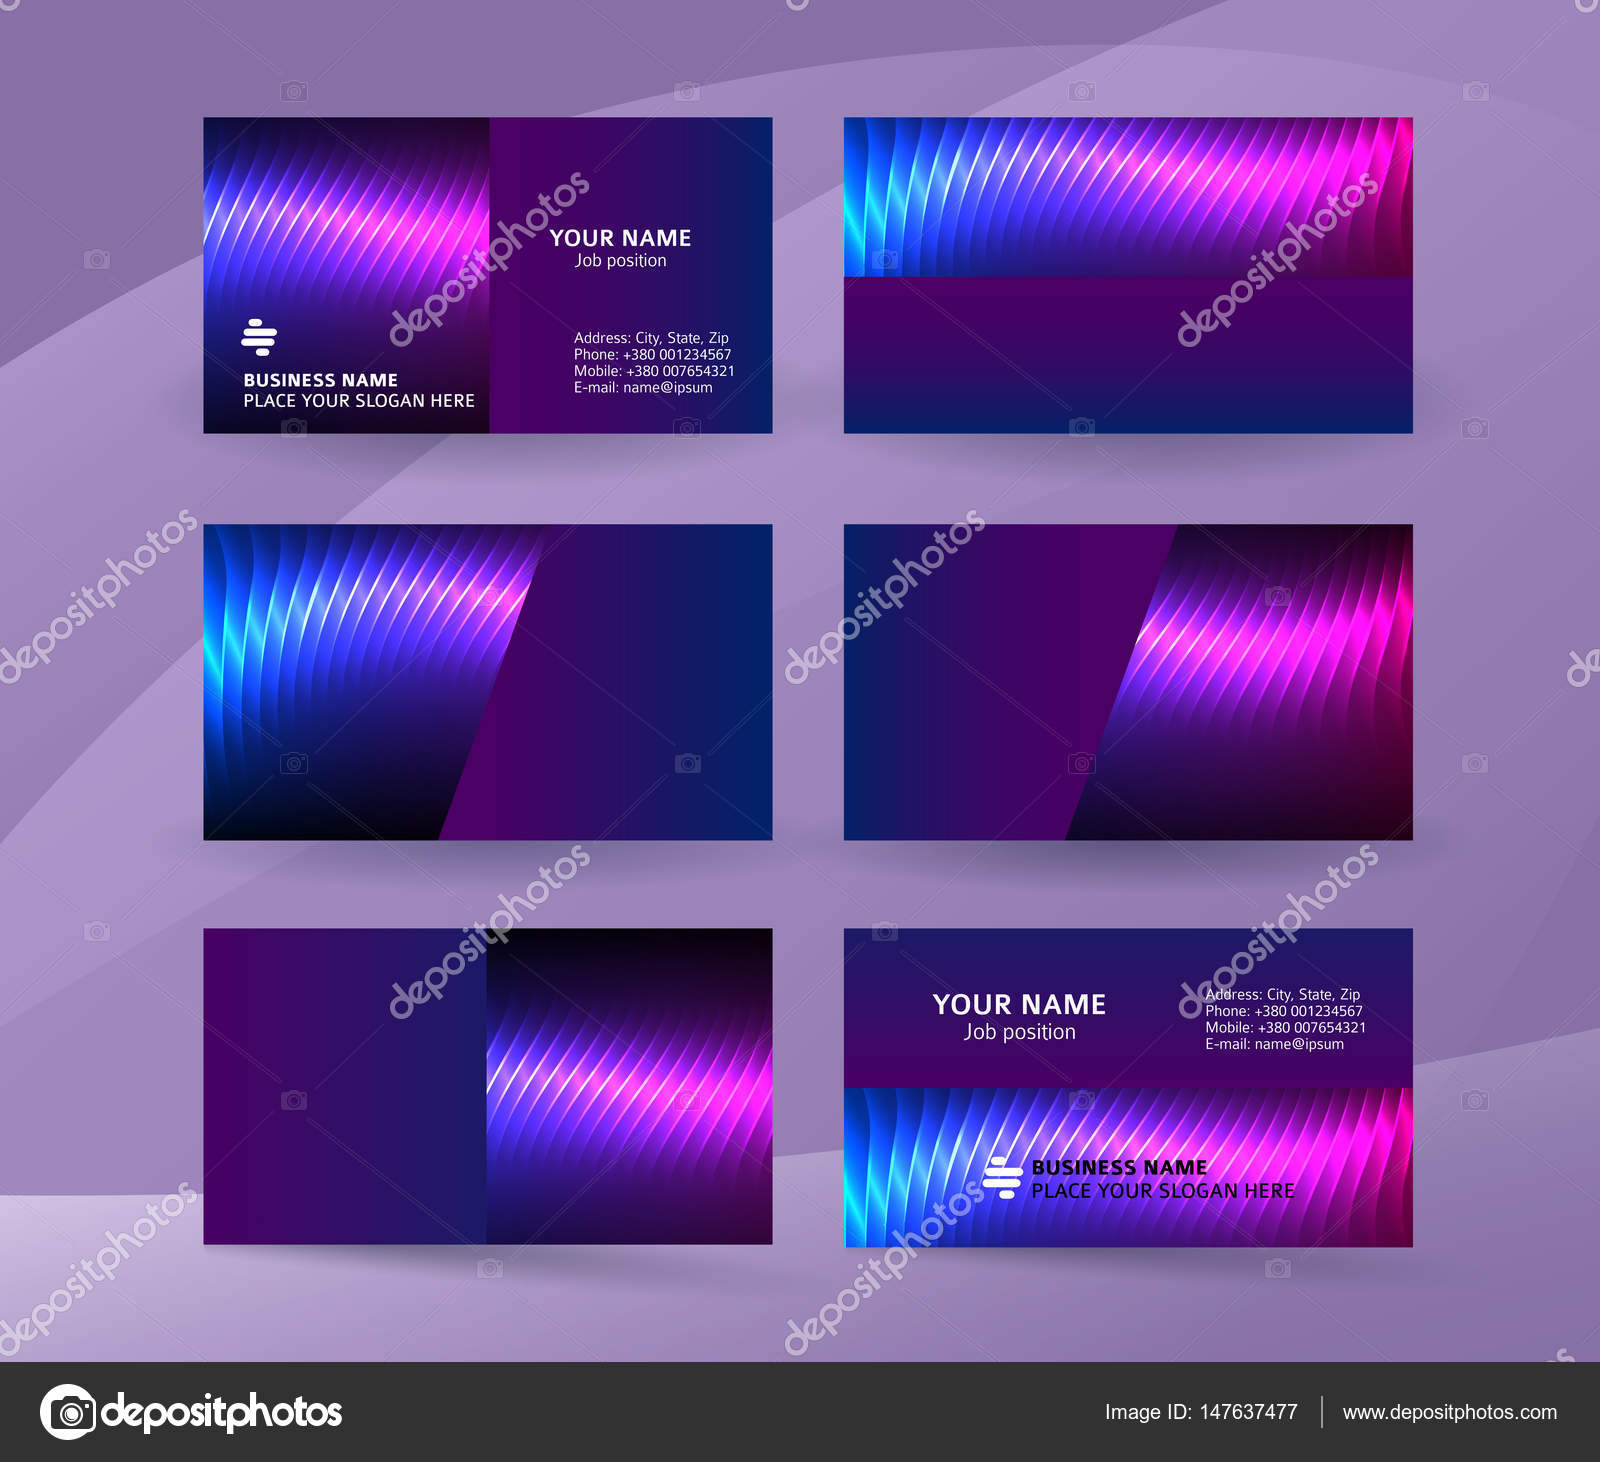 Abstract Professional And Designer Business Card Template Or Clear Minimal Visiting Set Name Purple Background Vector Illustration EPS 10